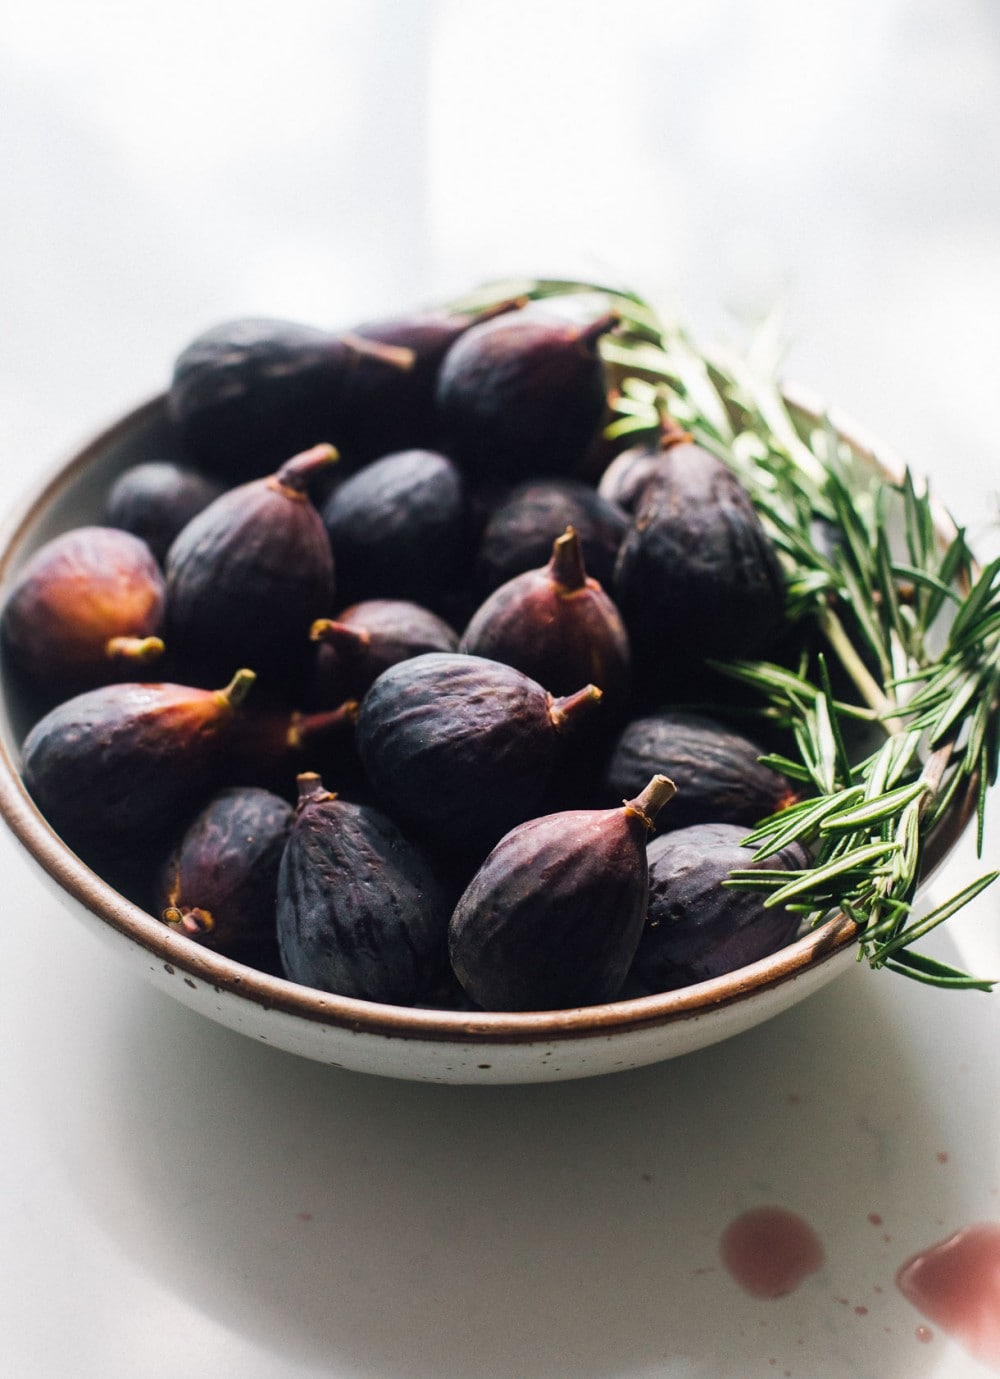 bowl of mission figs with rosemary sprigs sitting on the right side of bowl